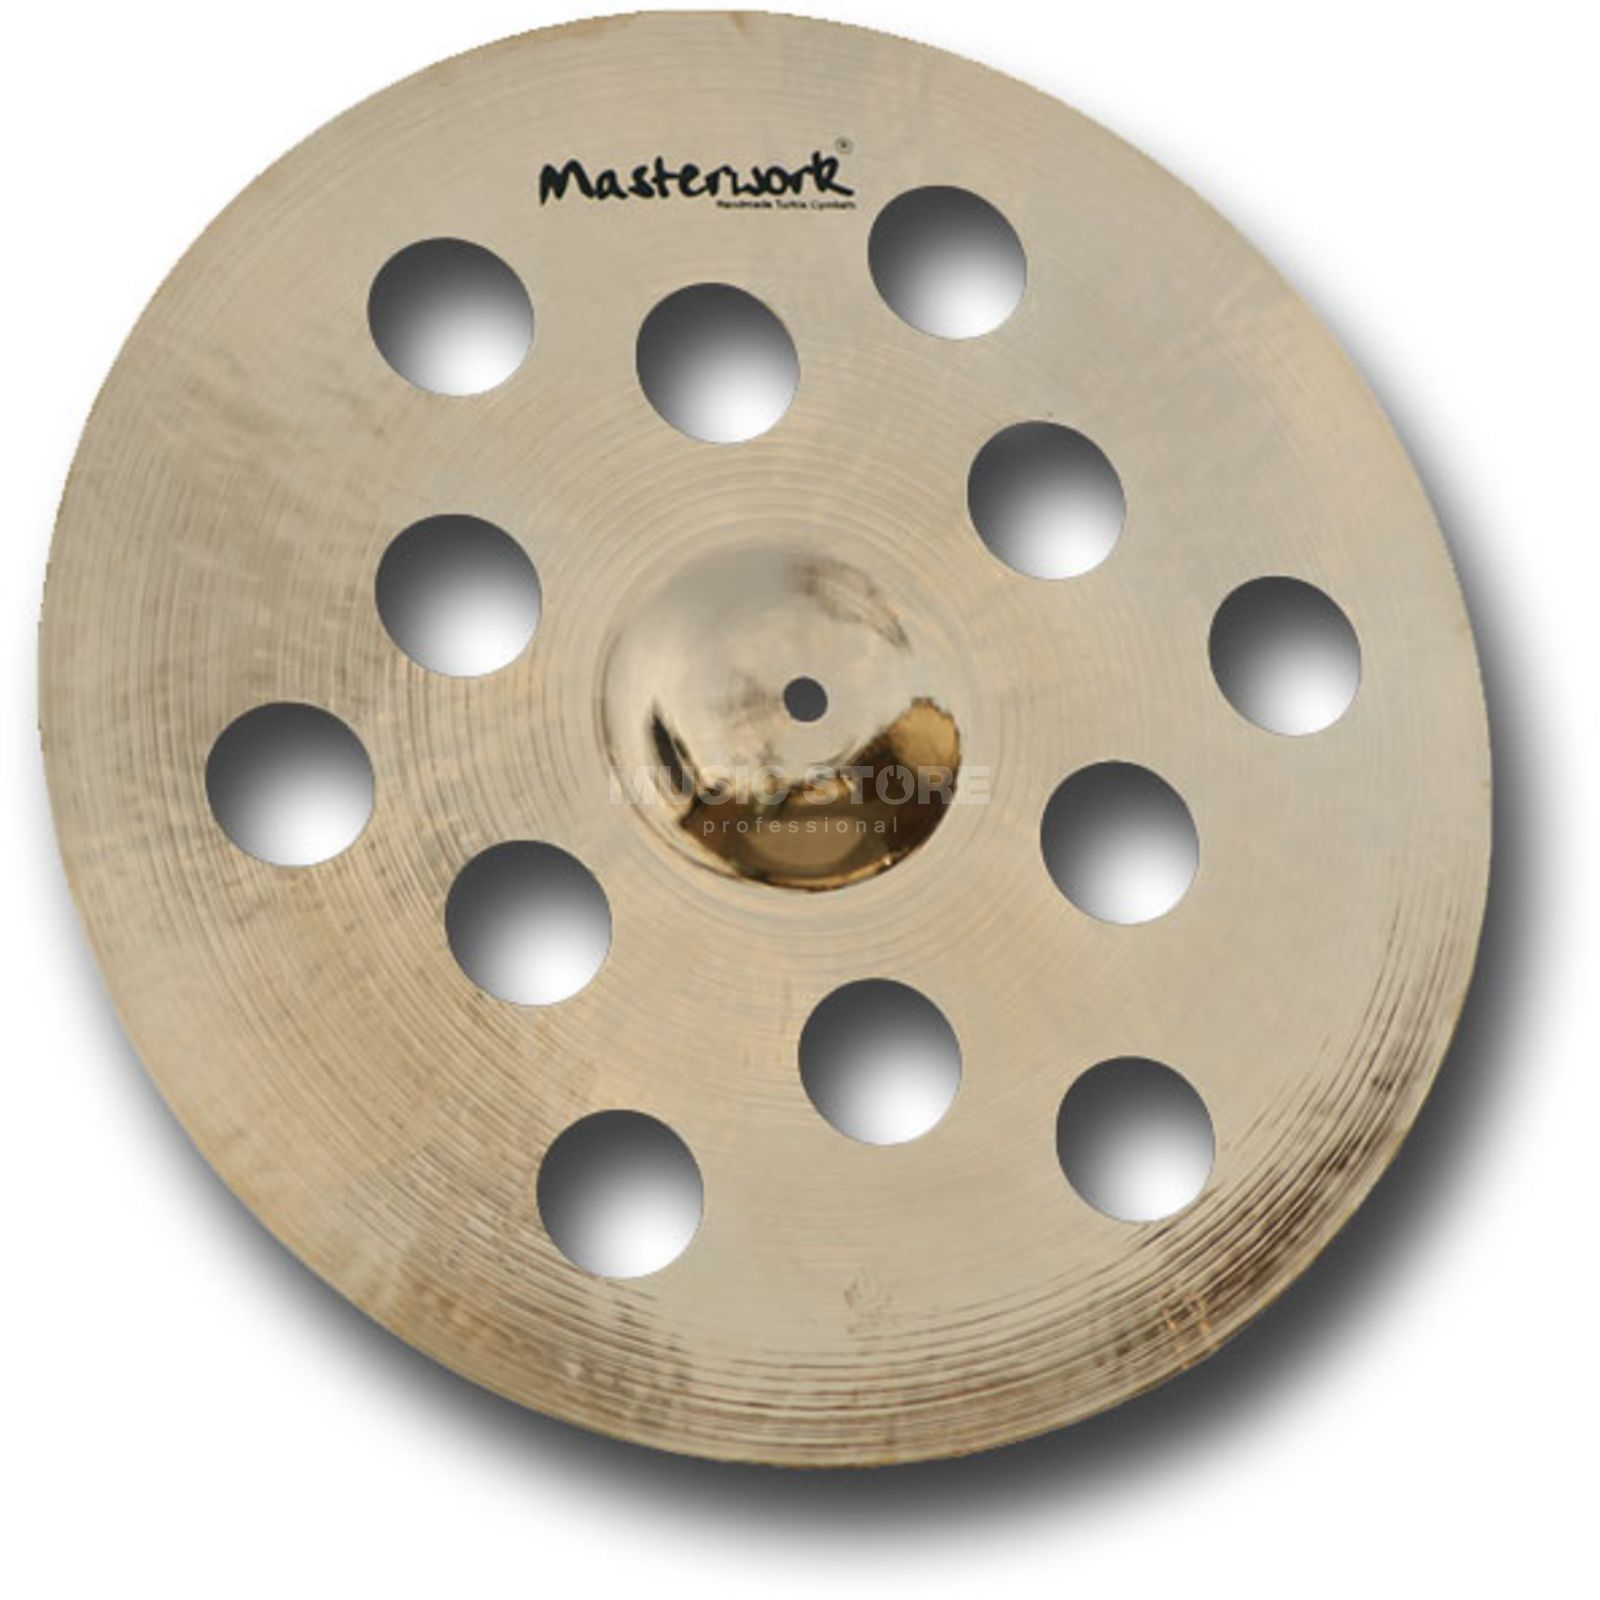 "Masterwork Resonant FX Crash 17"", Brilliant Finish Productafbeelding"